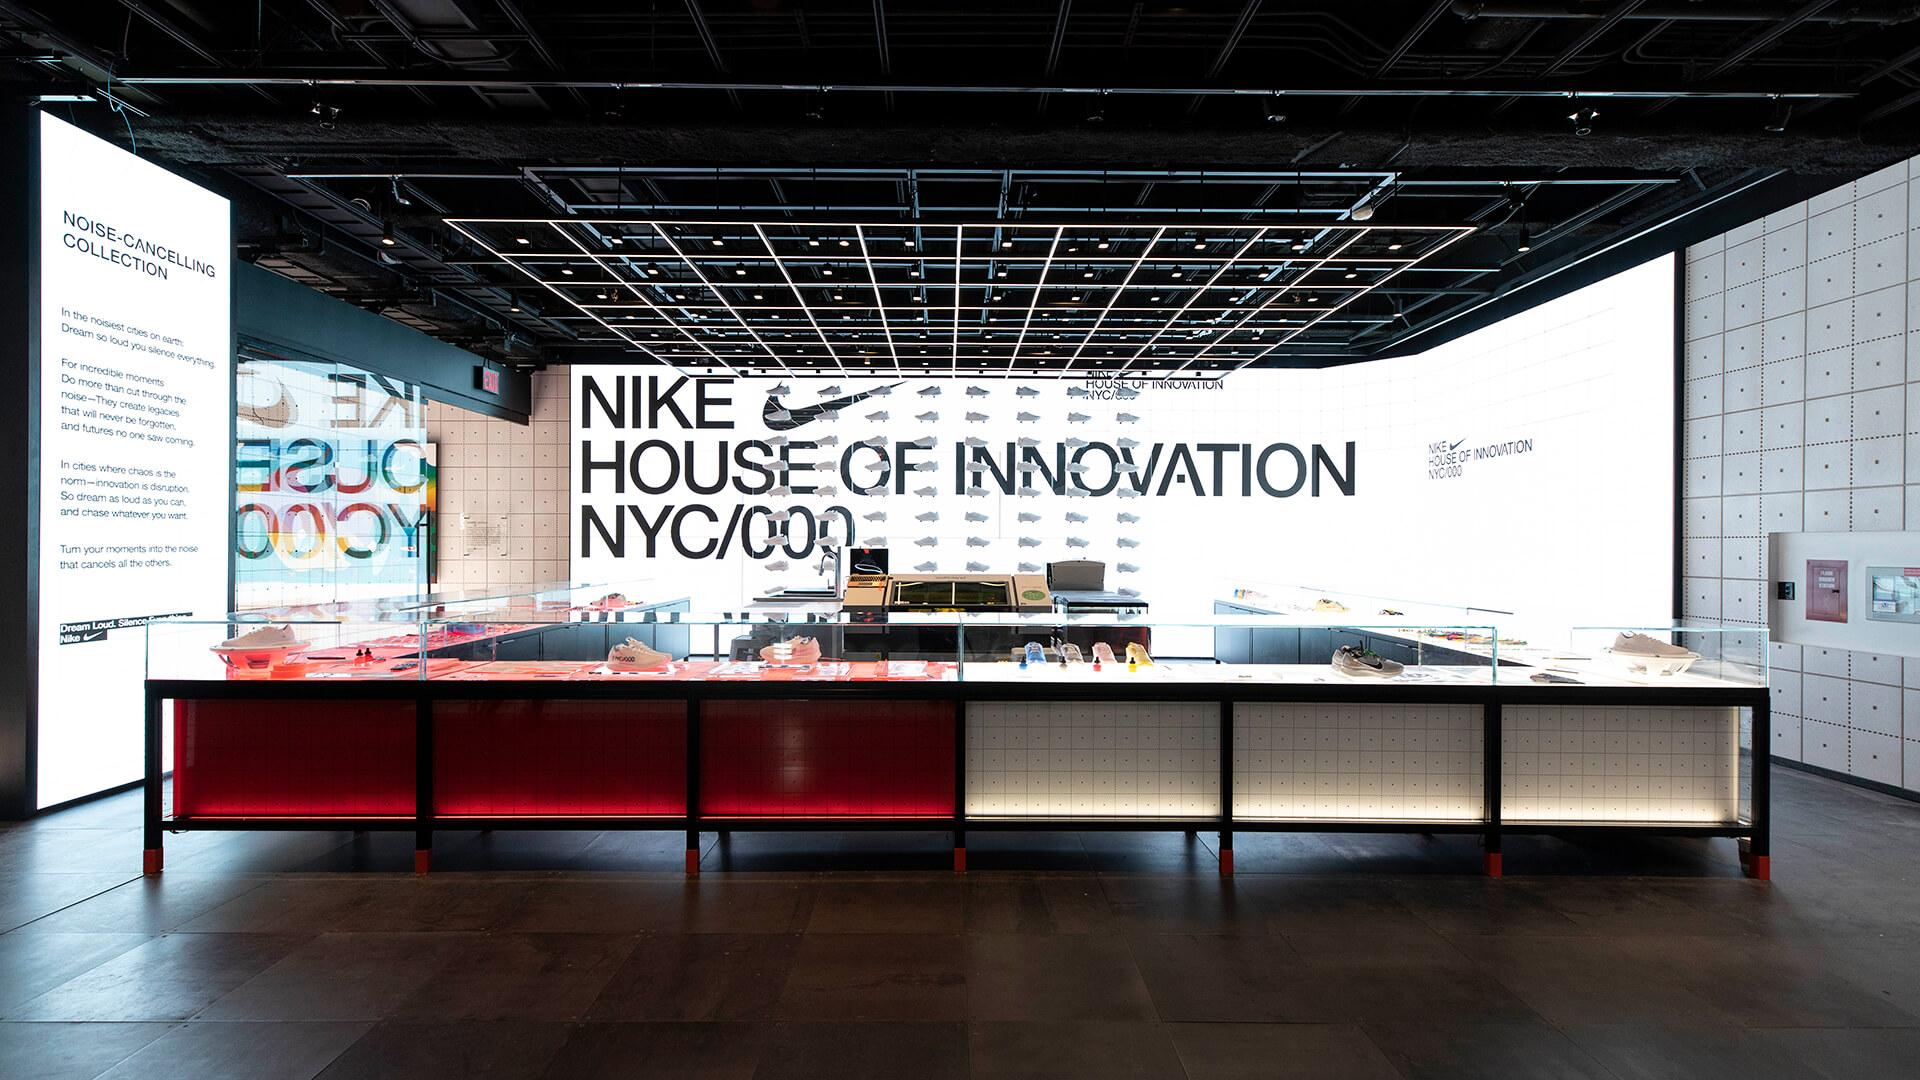 espacio cueva negativo  FRAME | Nike's House of Innovation 000 shows that big data does not equal  loss of theatre